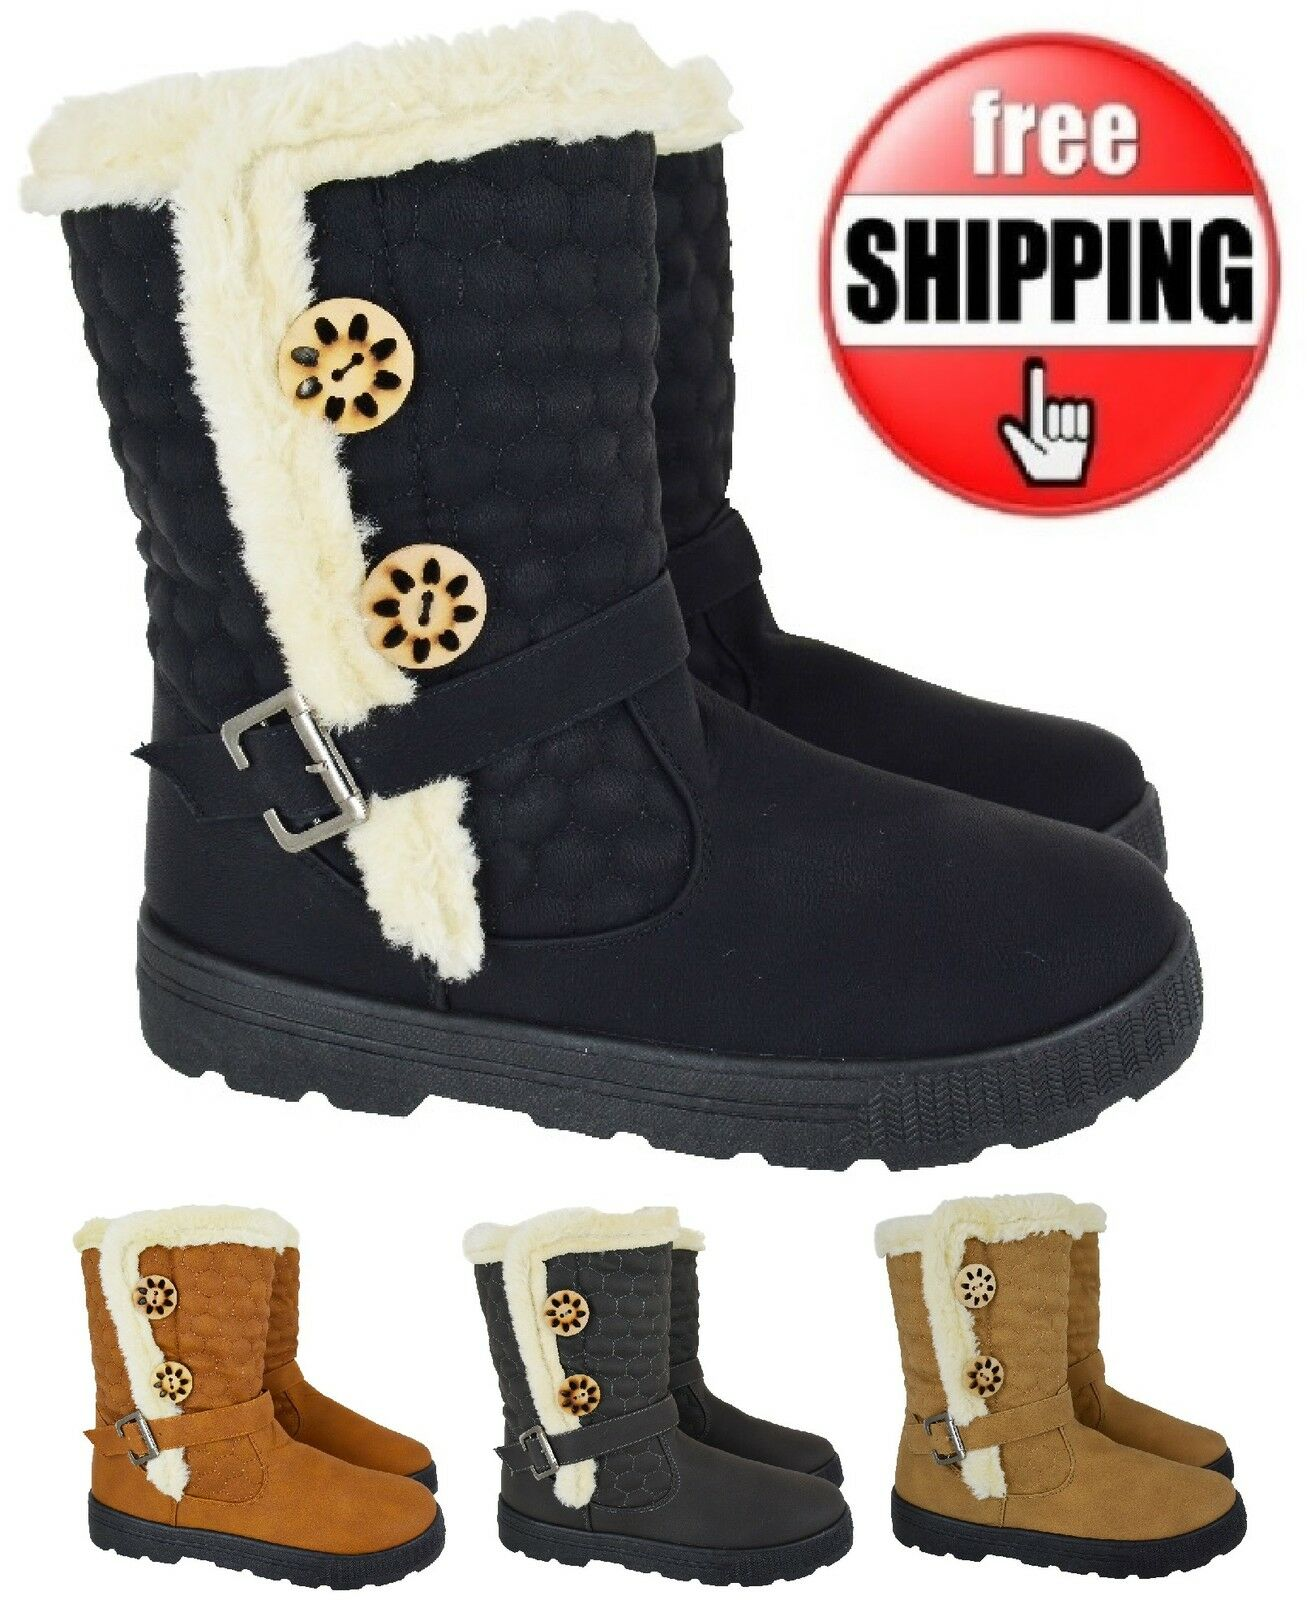 LADIES WOMENS NEW ANKLE WARM WINTER FAUX FUR LINNED FASHION GRIP SOLE BOOTS SZ